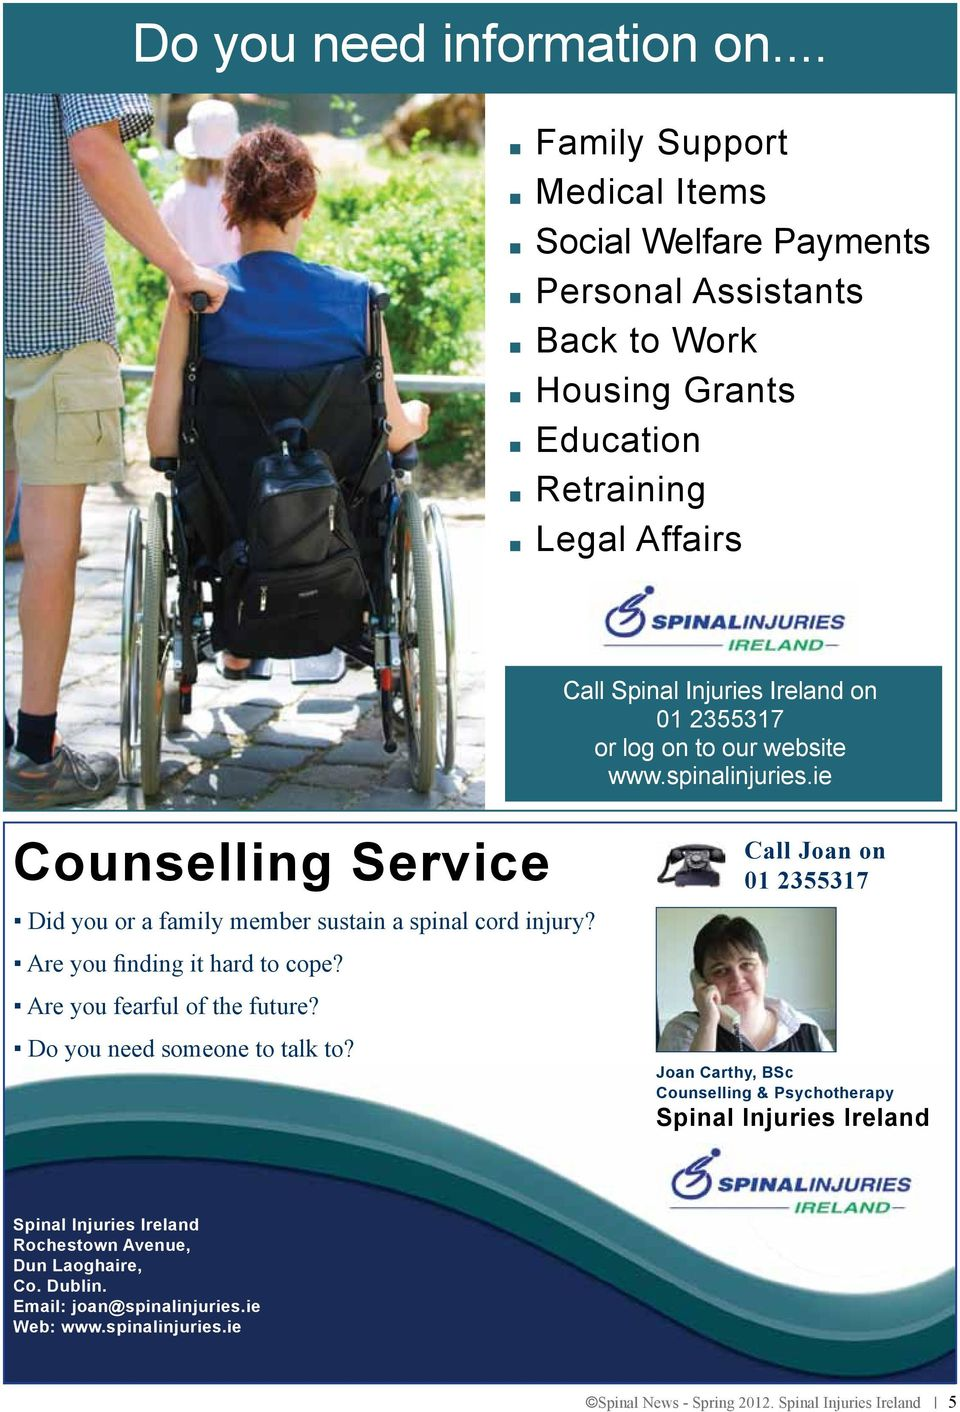 2355317 or log on to our website www.spinalinjuries.ie Counselling Service Did you or a family member sustain a spinal cord injury? Are you finding it hard to cope?